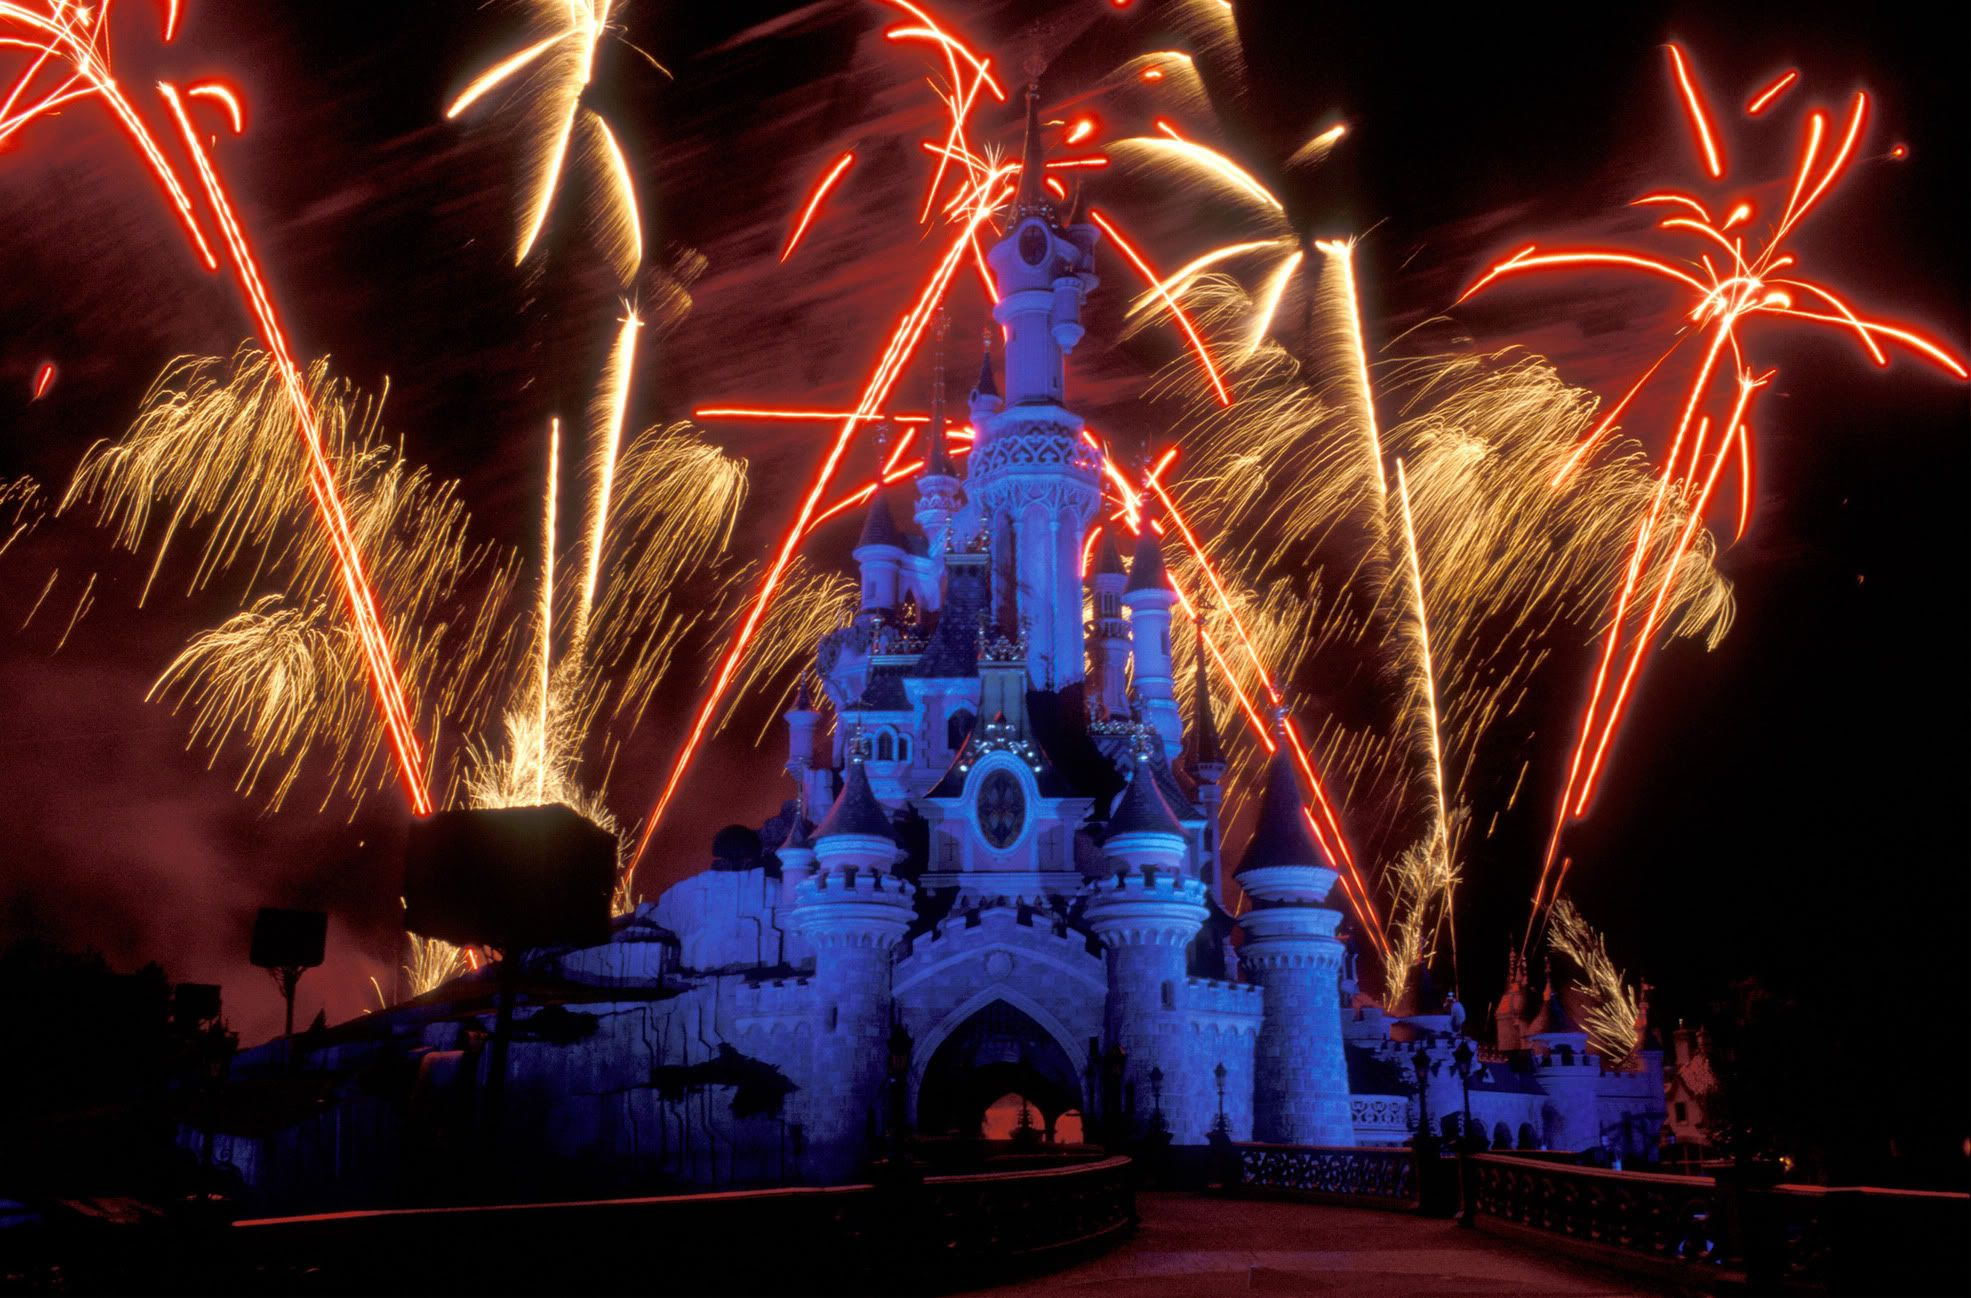 disney july 4th wallpaper-#36